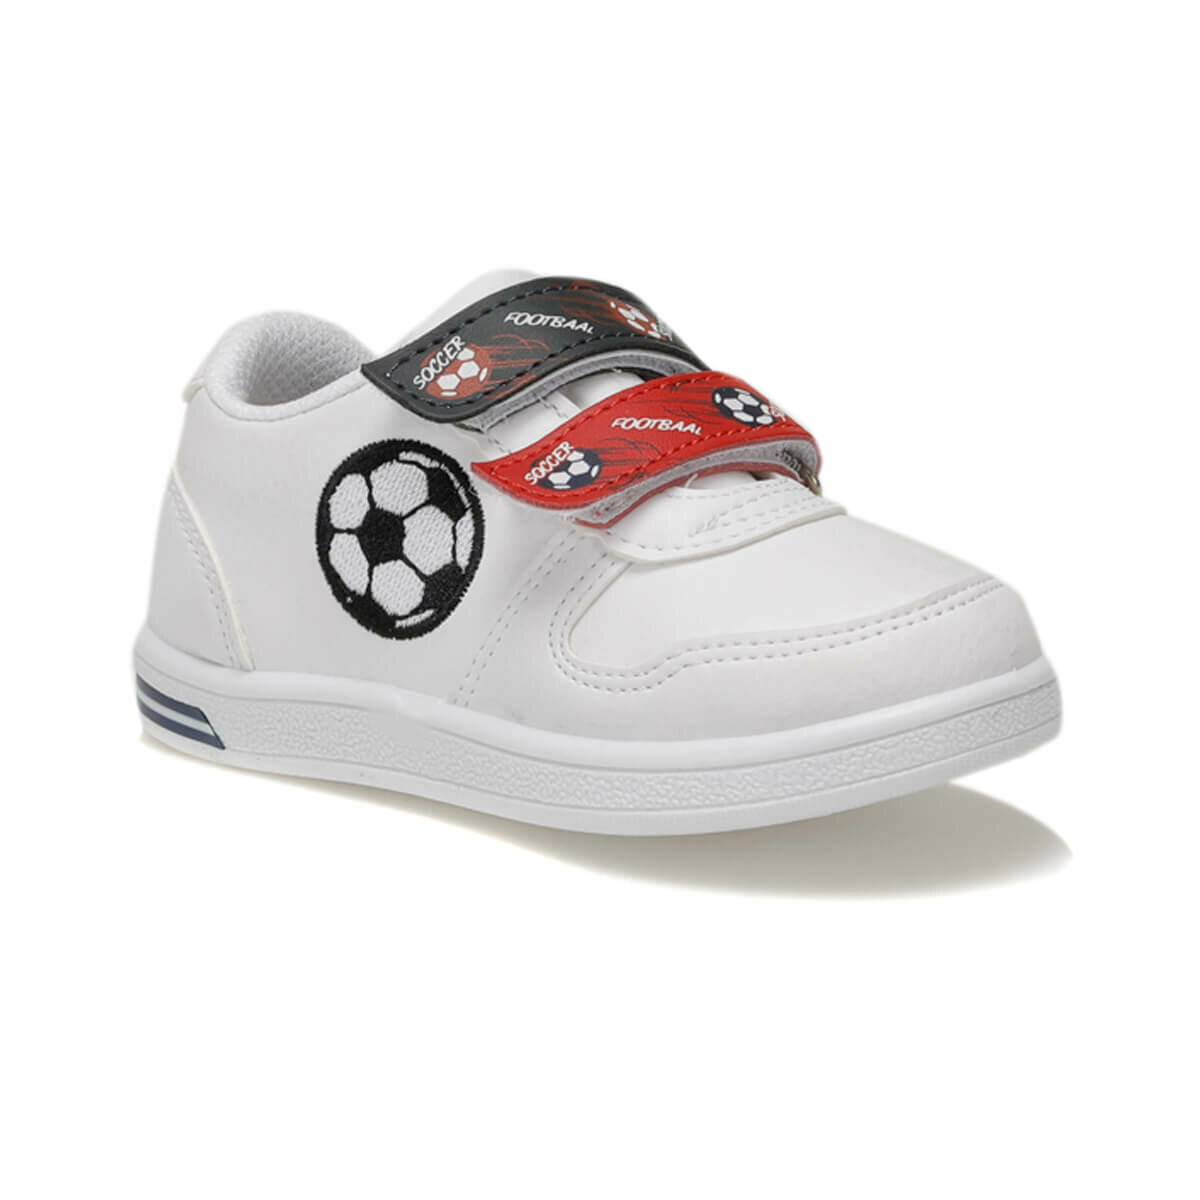 FLO SOCCER White Male Child Sneaker Shoes I-Cool